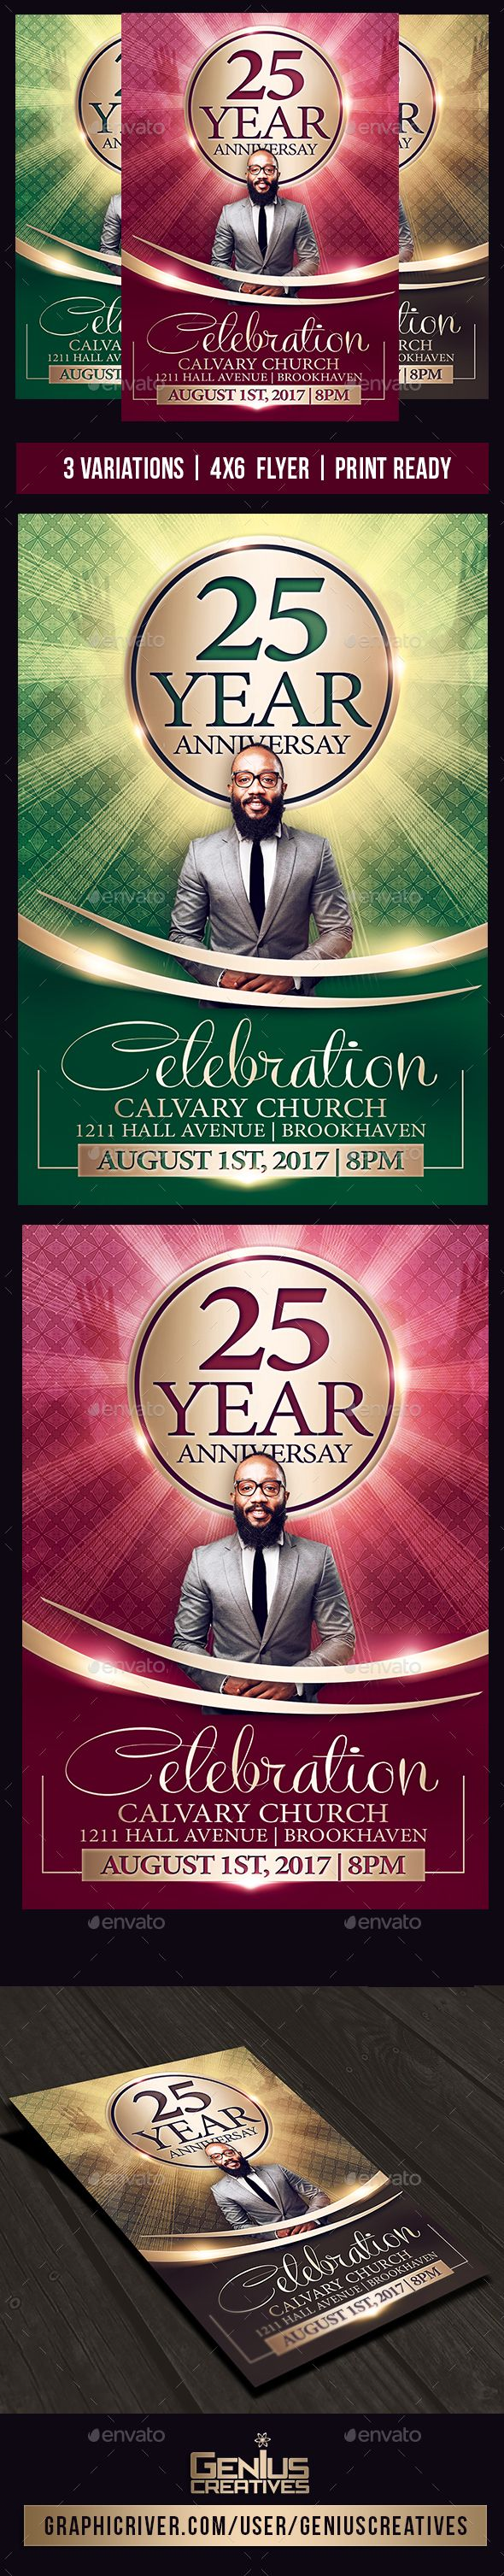 Church #Anniversary #Flyer - Church Flyers Download here:  https://graphicriver.net/item/church-anniversary-flyer/20462843?ref=alena994